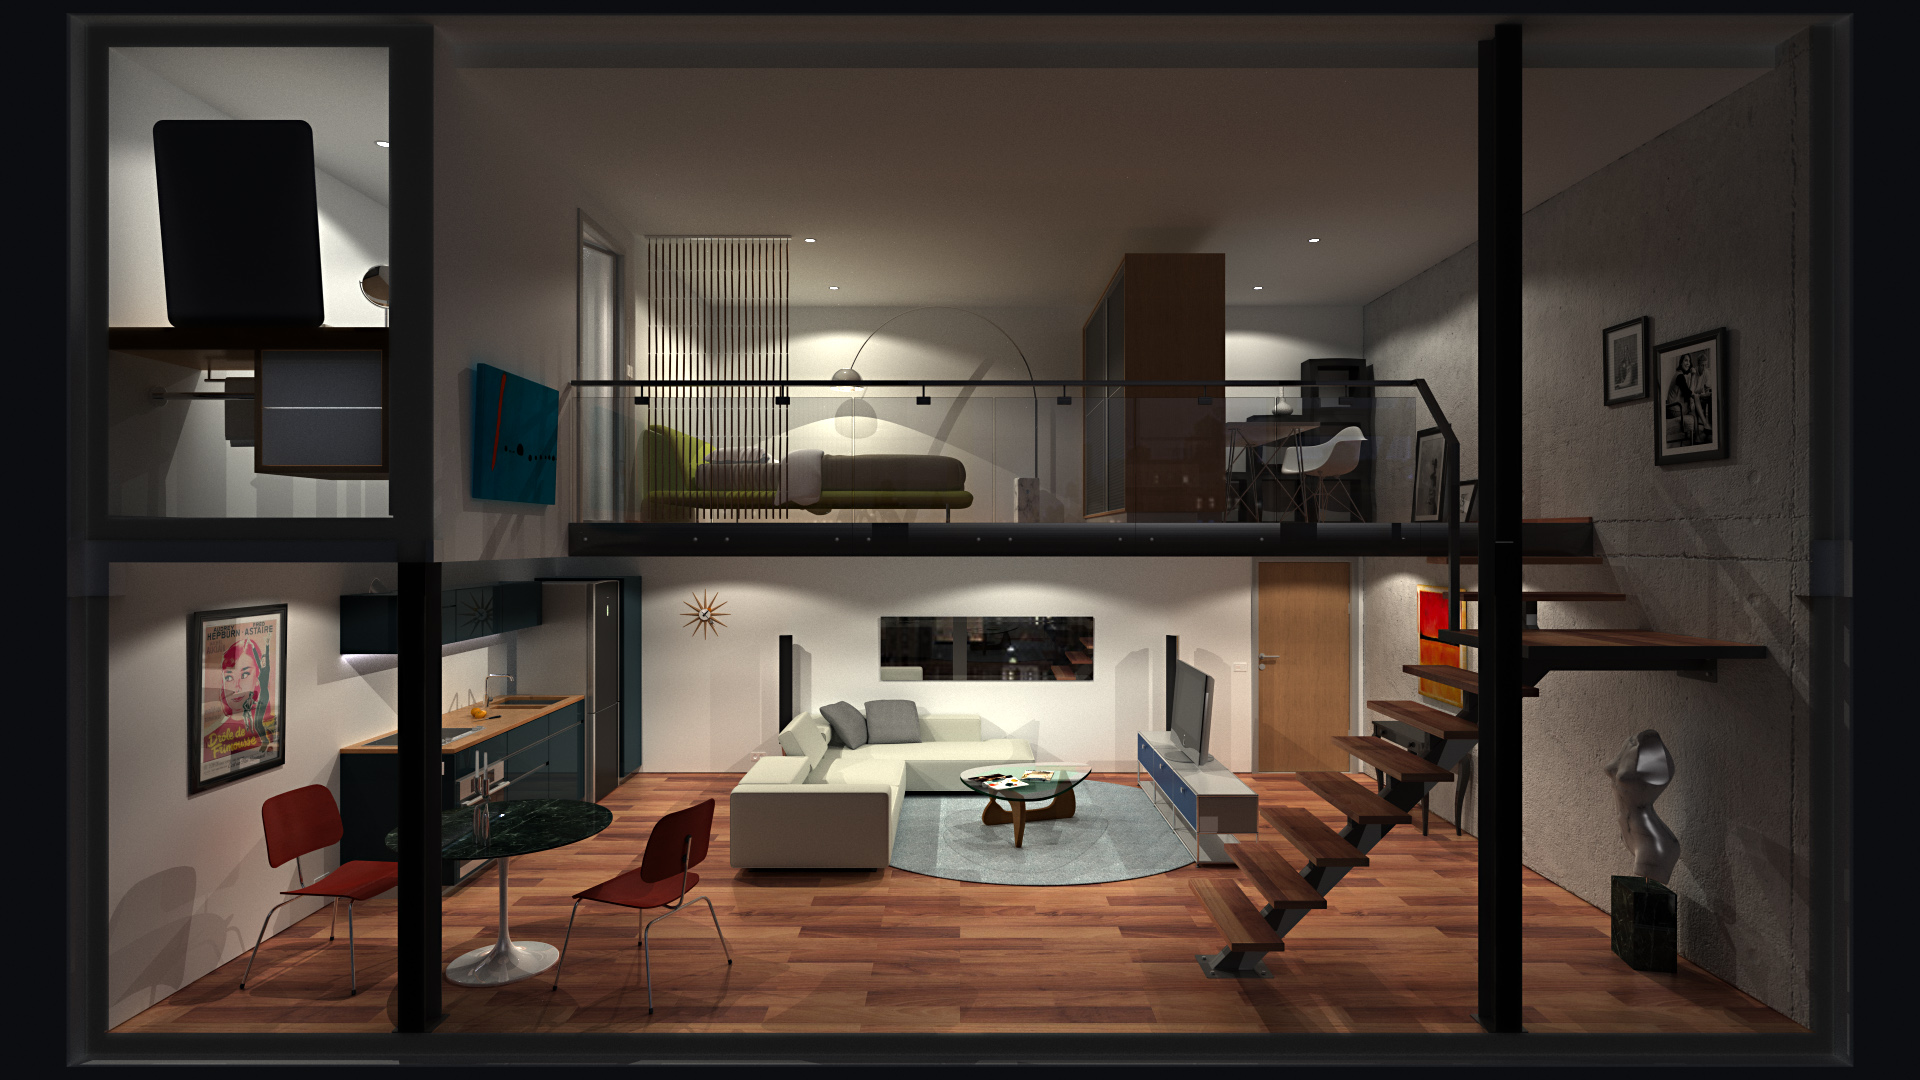 Loft Apartment 0 - HD, Night by richert